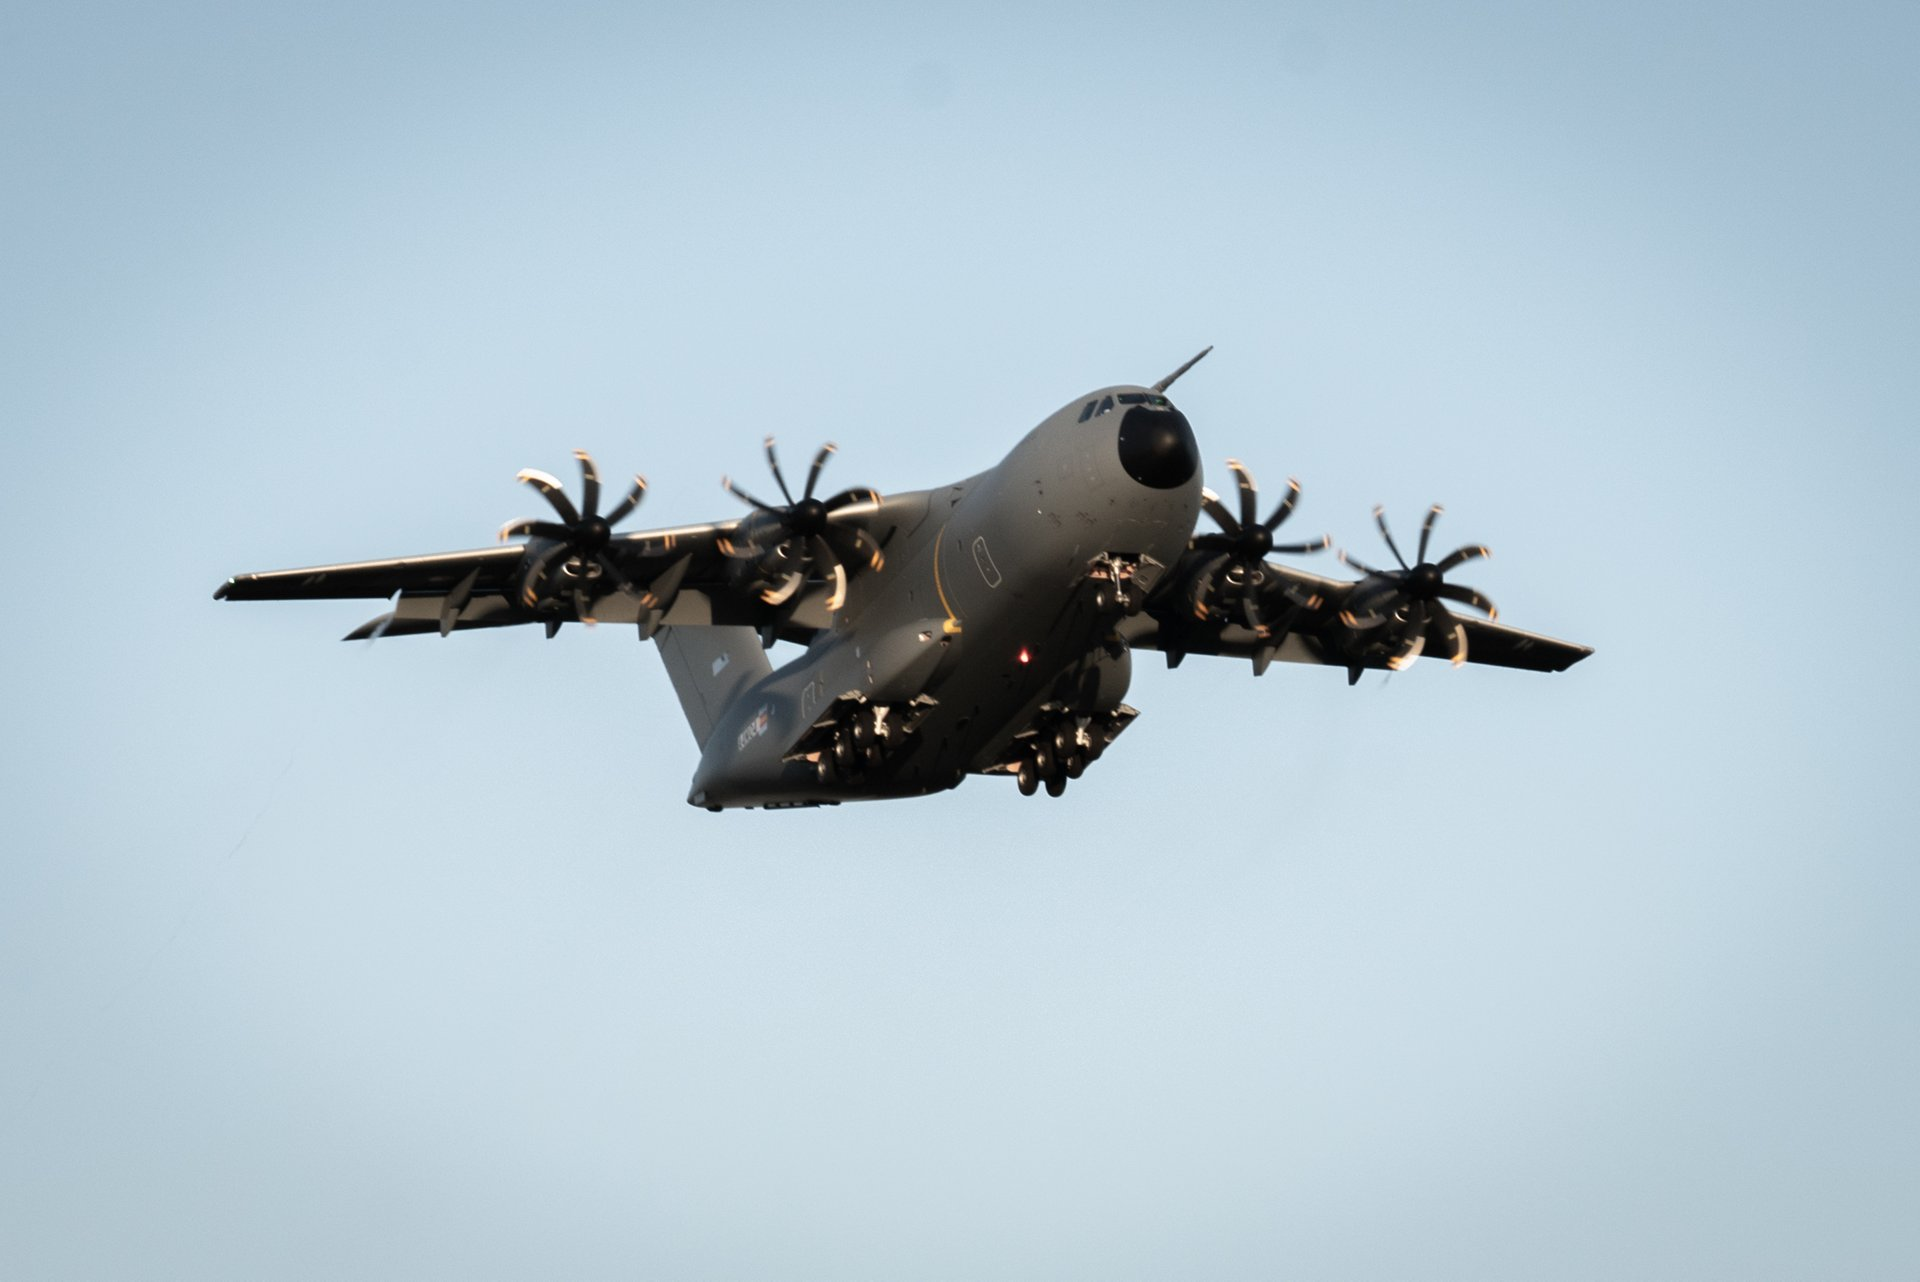 The Airbus A400M new-generation airlifter ordered by the Luxembourg Armed Forces has made its maiden flight, marking a key milestone towards its delivery.